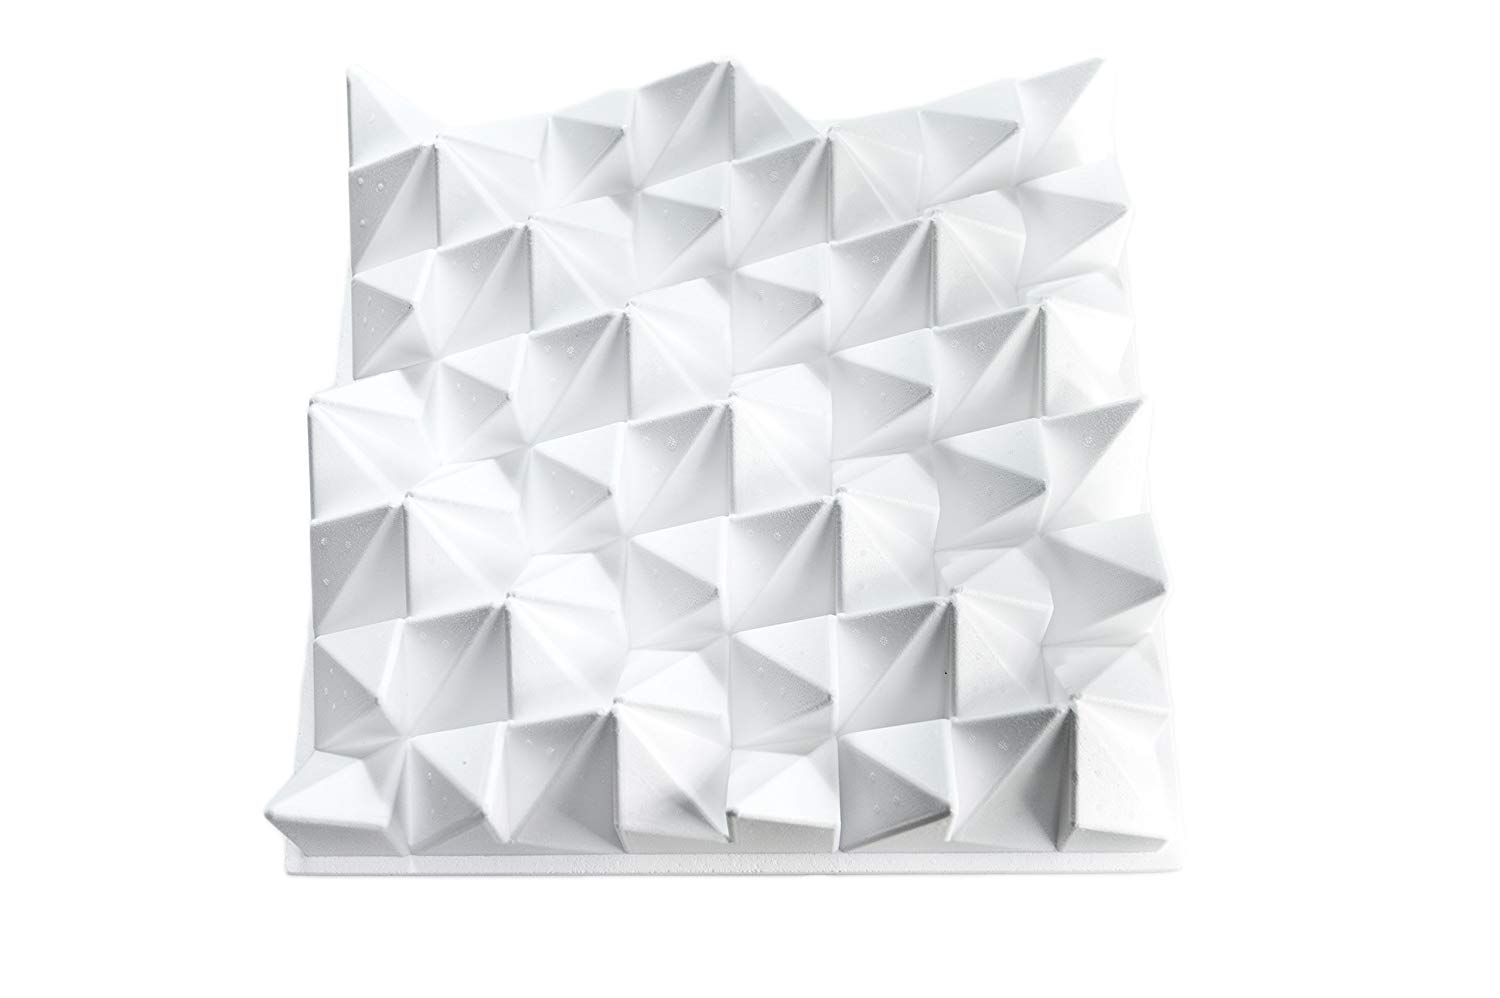 """JOCAVI Acoustic Panels COR060 ATP CORALREEF Acoustic Diffuser Panel, EPS Raw 23.6"""" x 23.6"""" x 4.73"""", White"""